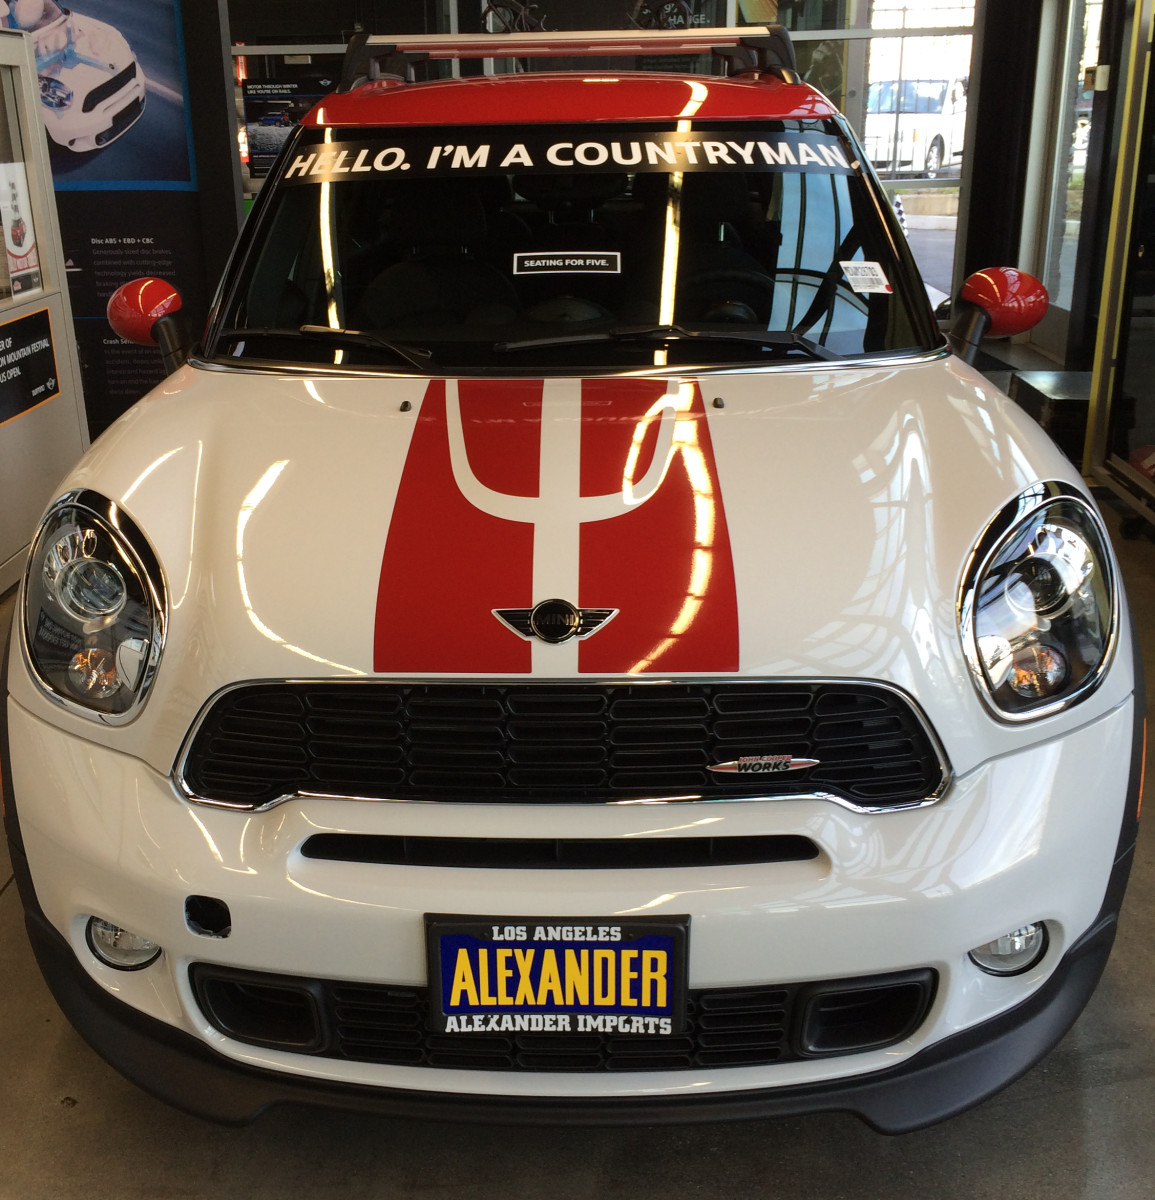 A highly customized MINI Countryman in the showroom of a dealership.